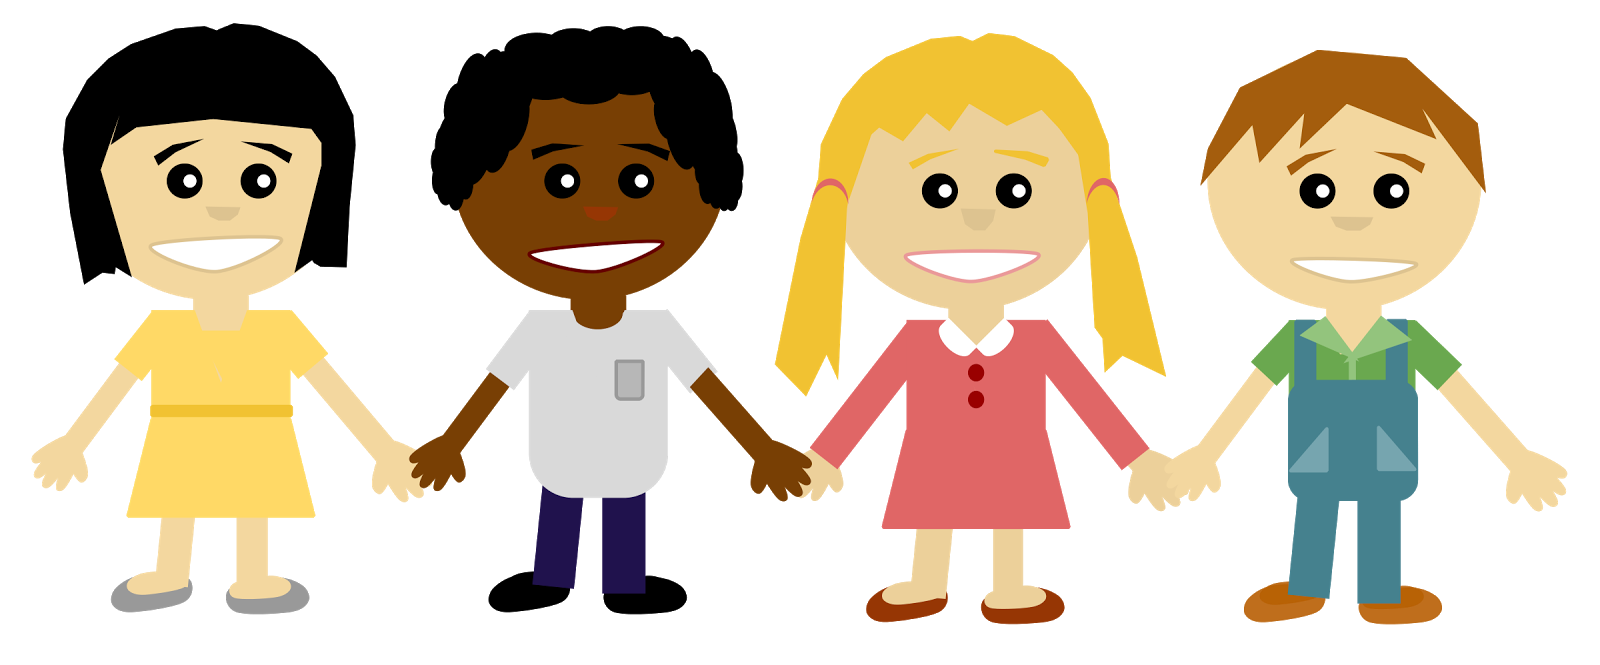 Person clipart friend.  collection of friends